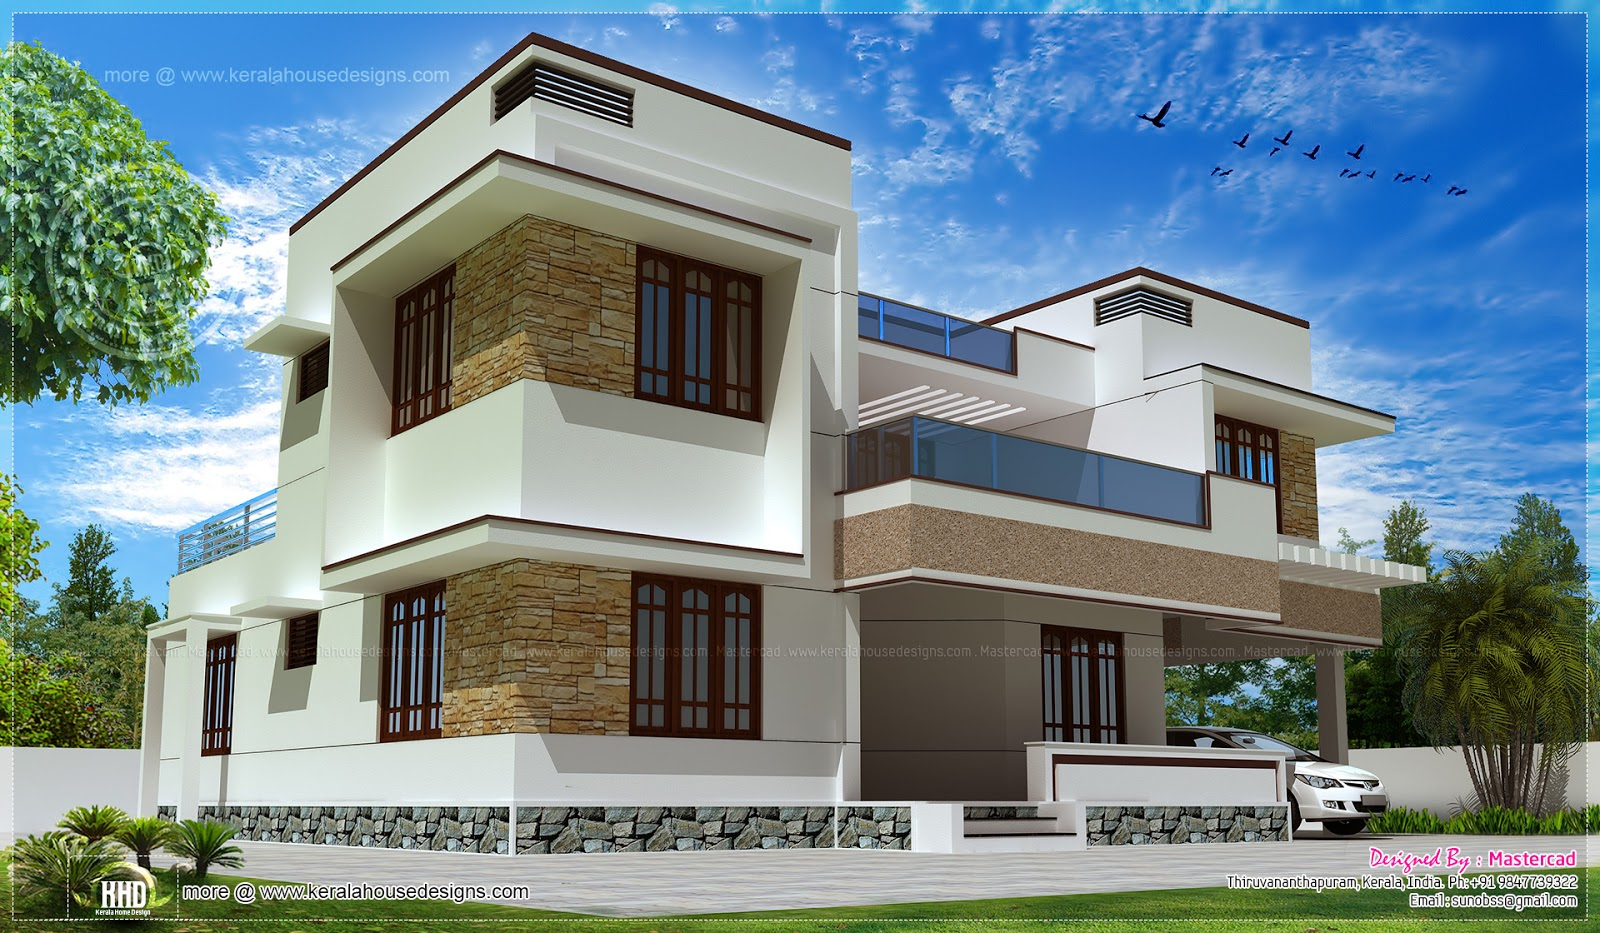 Roof Floor Elevation : Modern flat roof villa exterior elevation kerala home